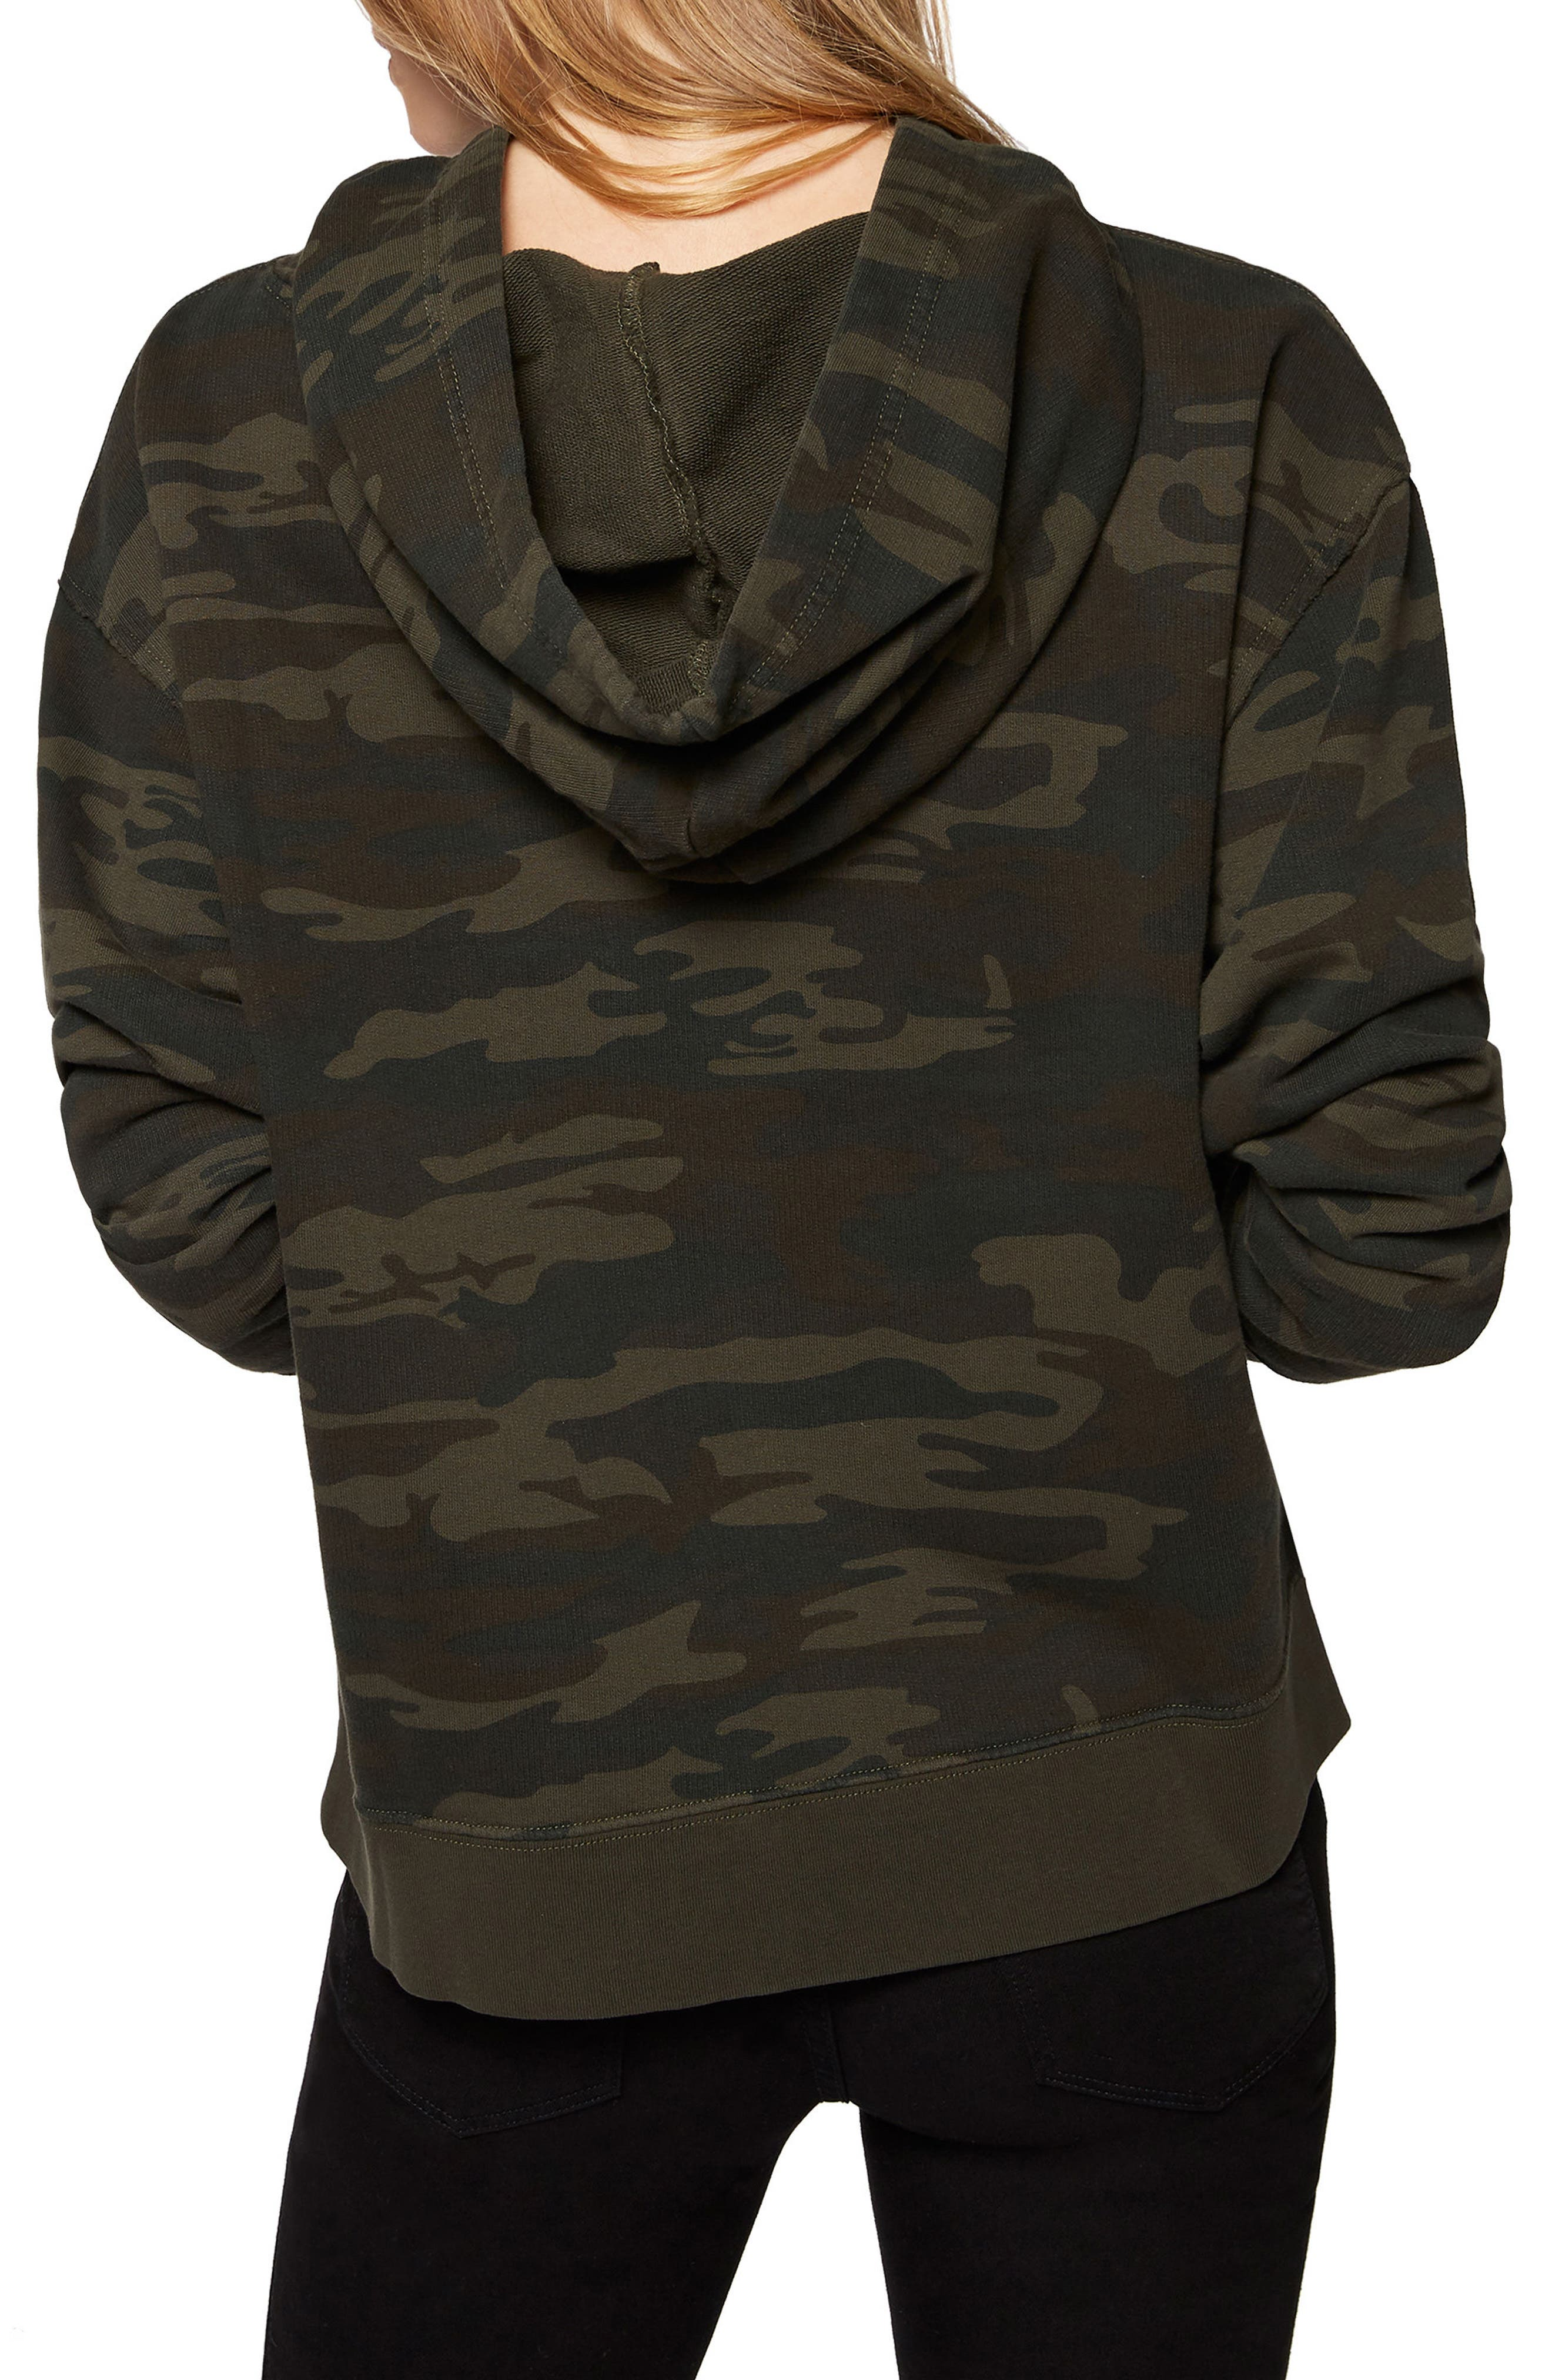 Venice Hoodie,                             Alternate thumbnail 2, color,                             Camp Camo